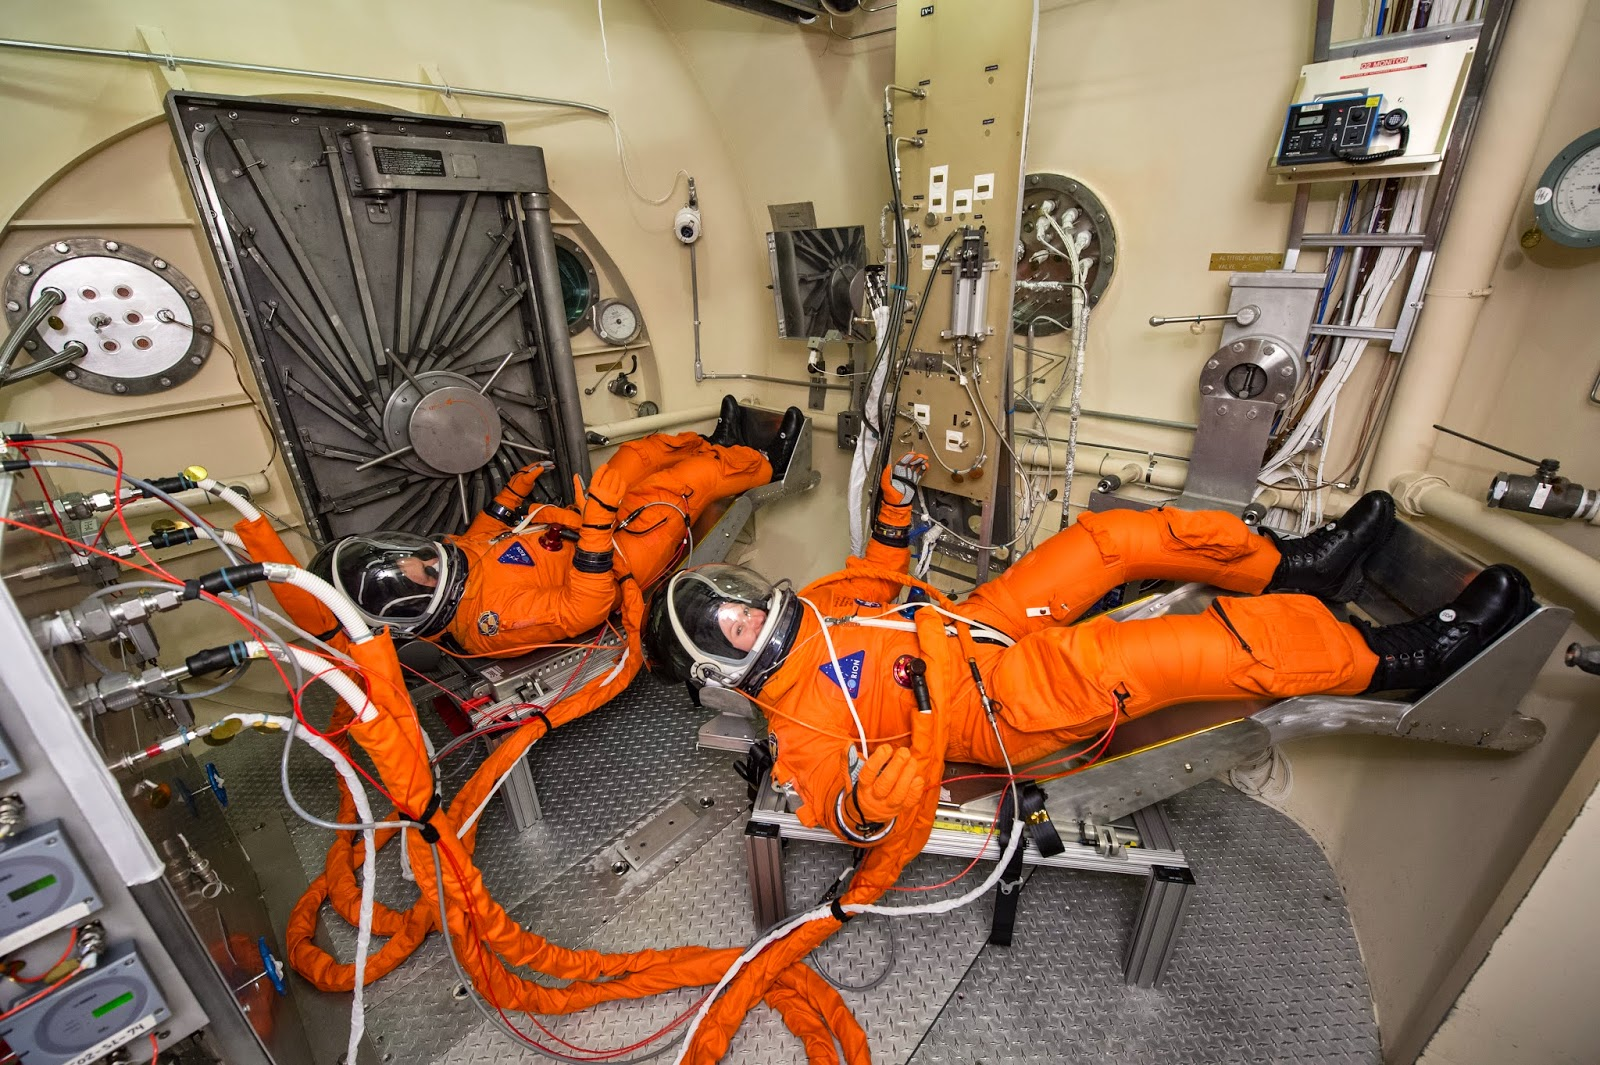 physics buzz going to mars how will we get there and who should go astronaut spacesuit testing for the orion spacecraft credit nasa bill stafford